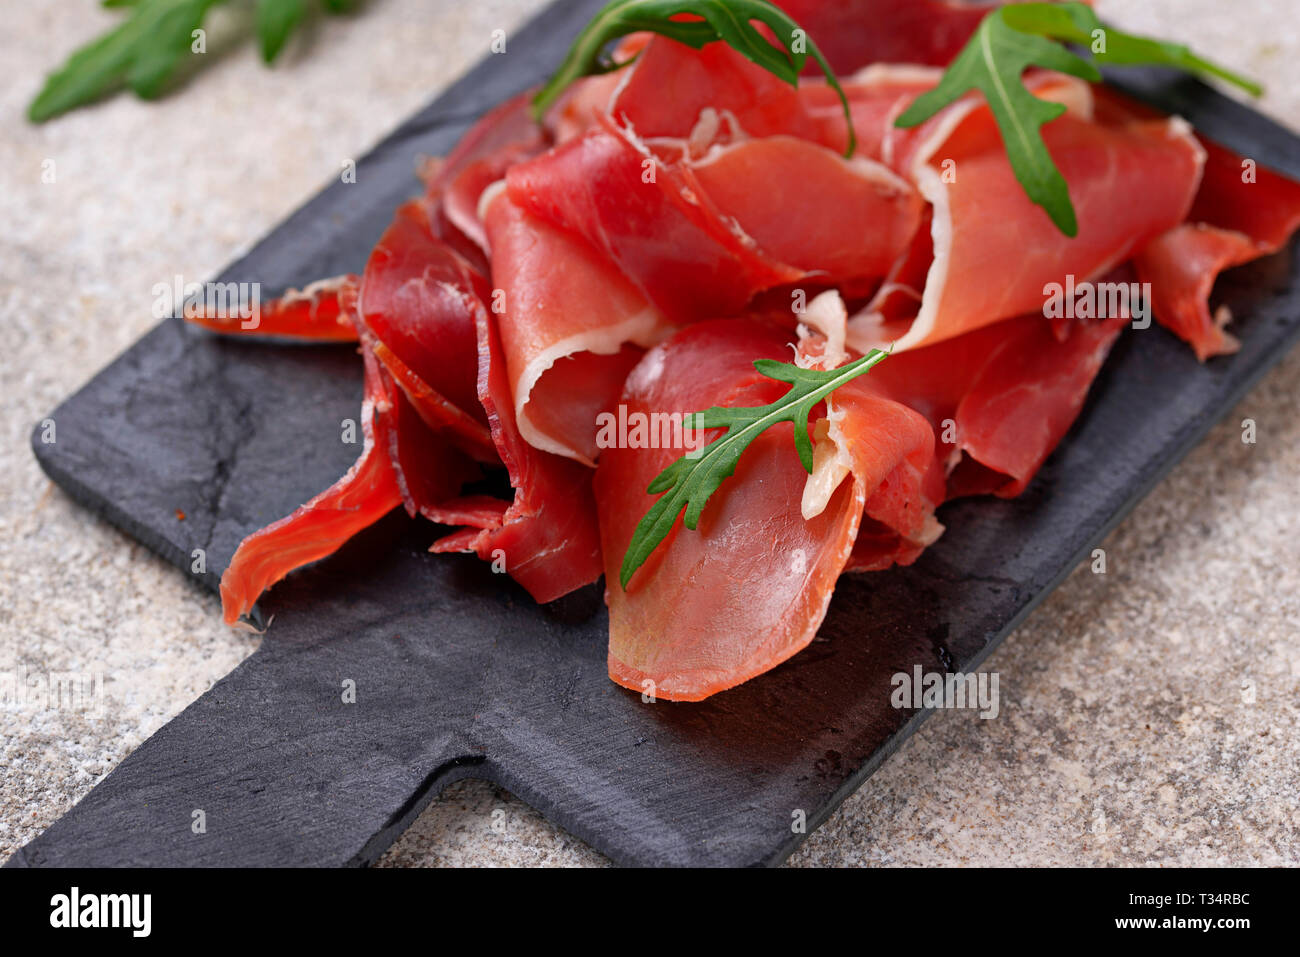 Traditionelle spanische Wurstwaren jamon Stockbild